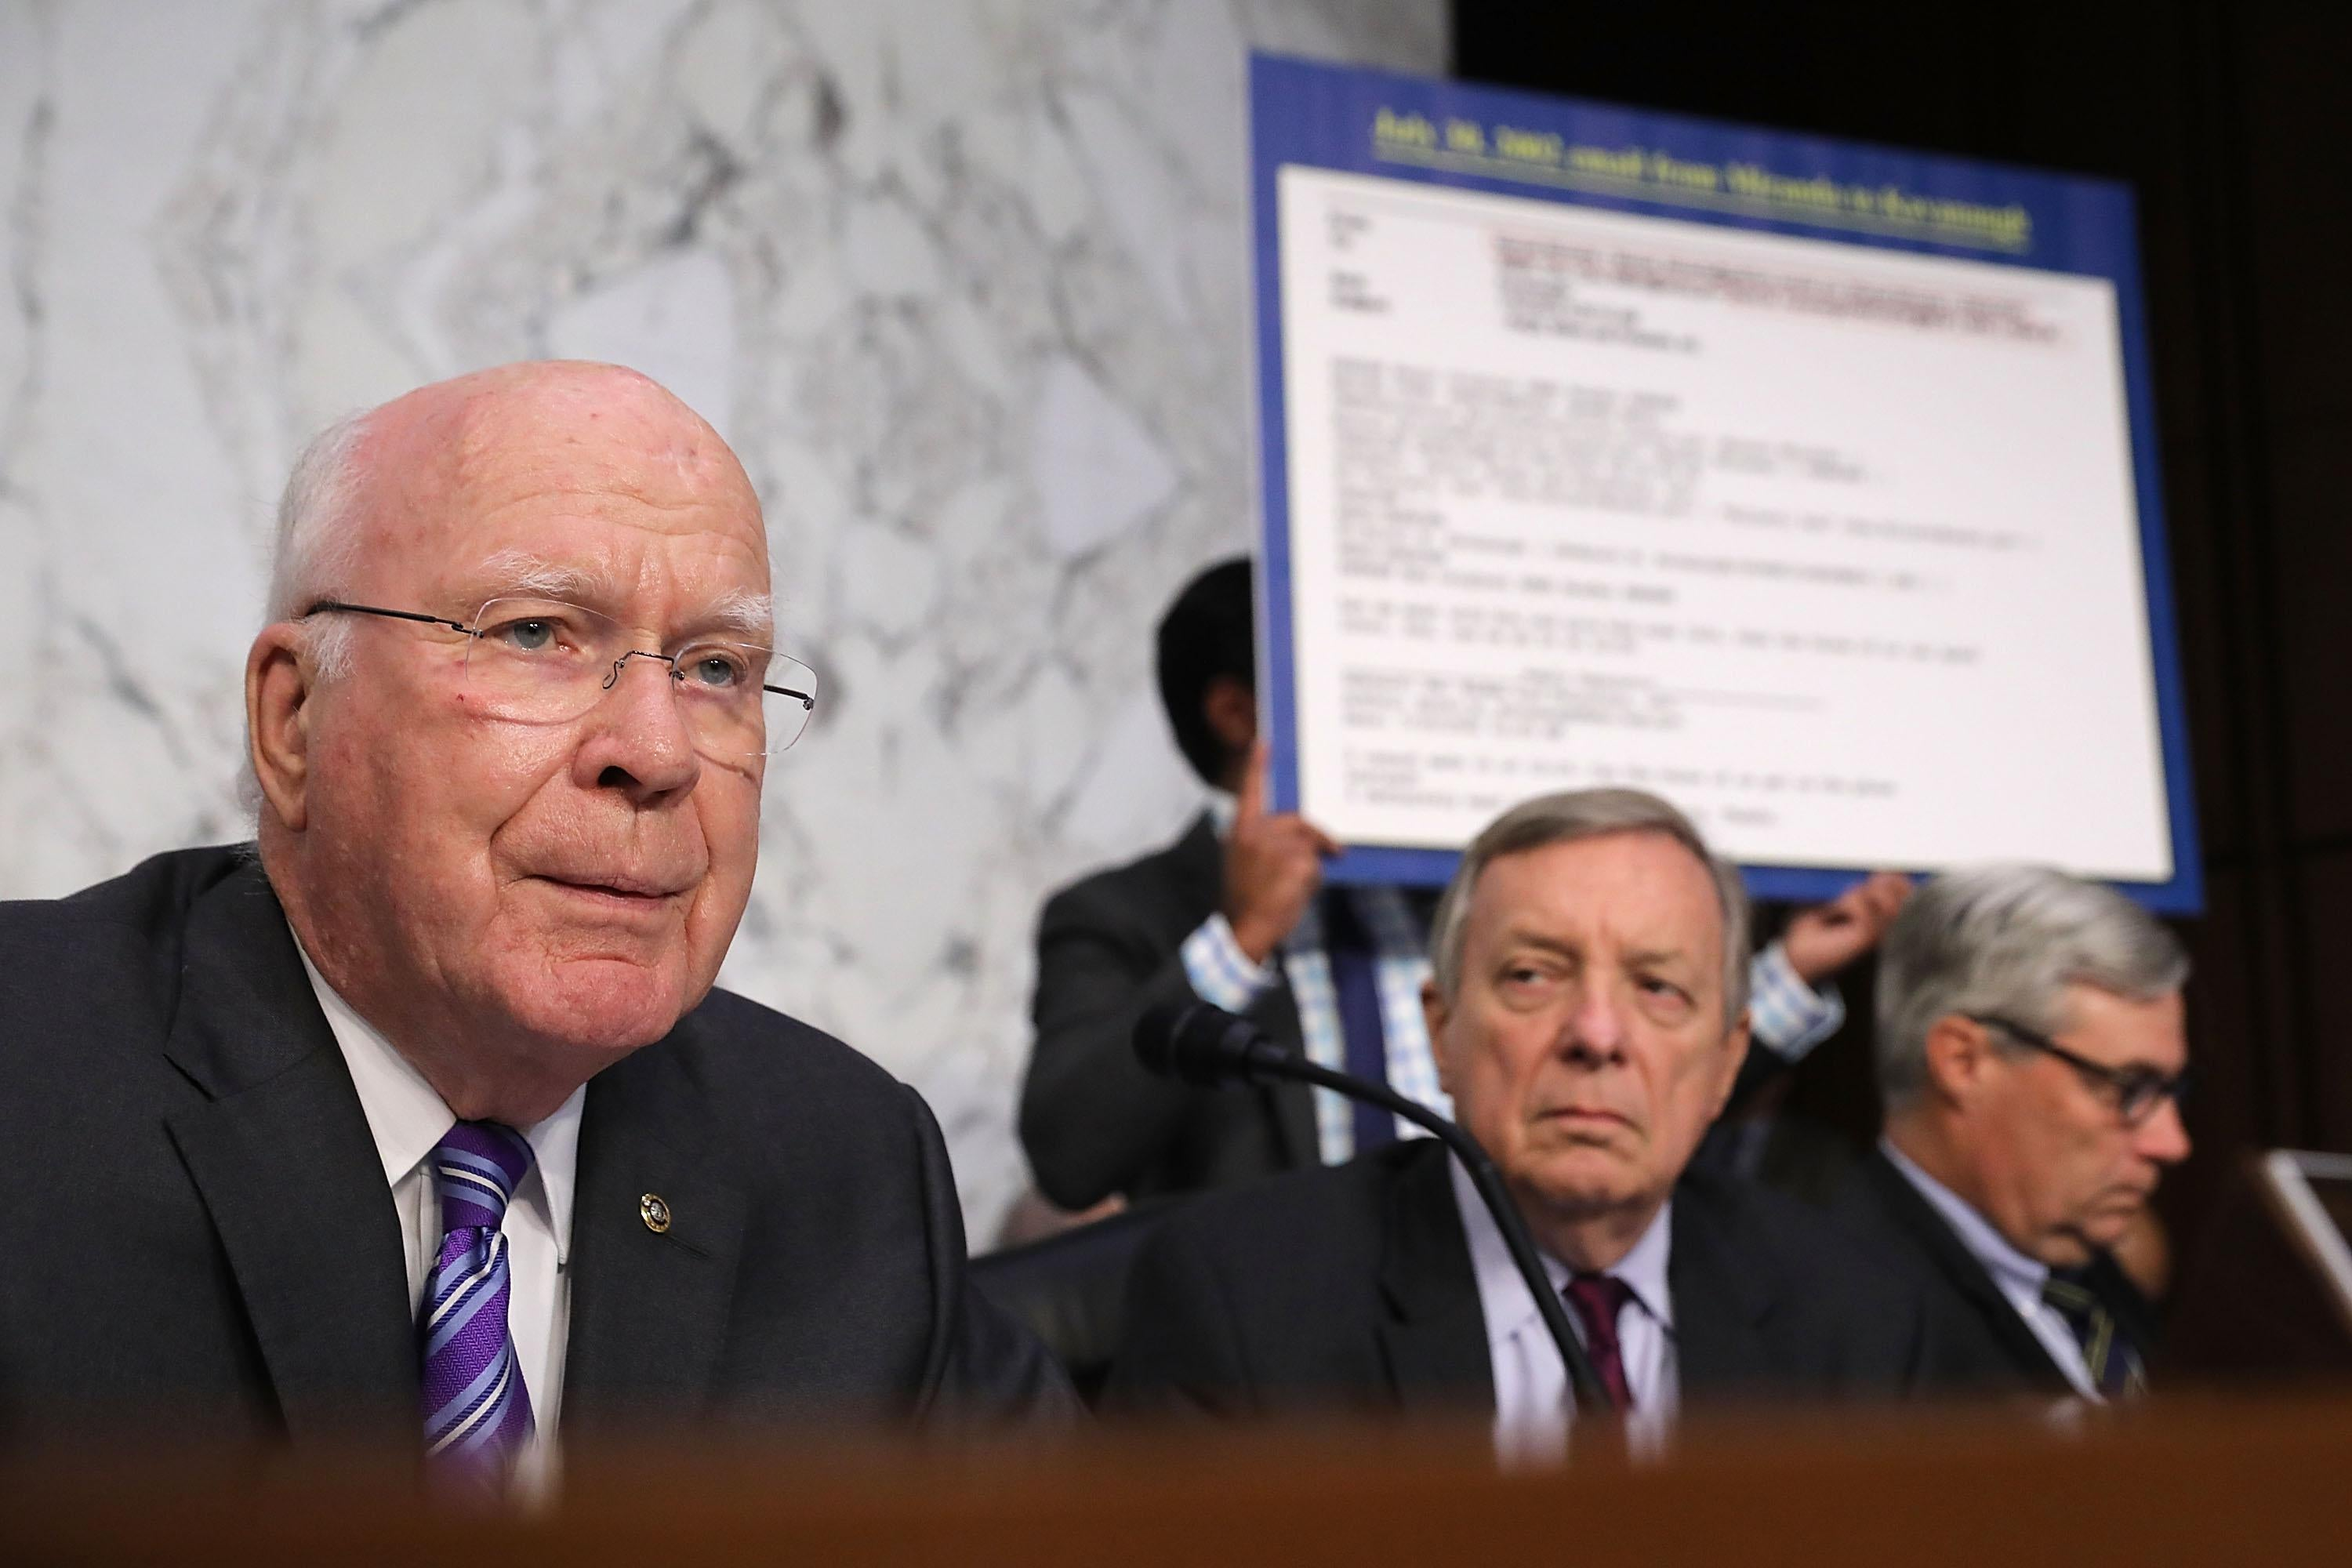 Sen. Patrick Leahy beside other members of the Senate Judiciary Committee.